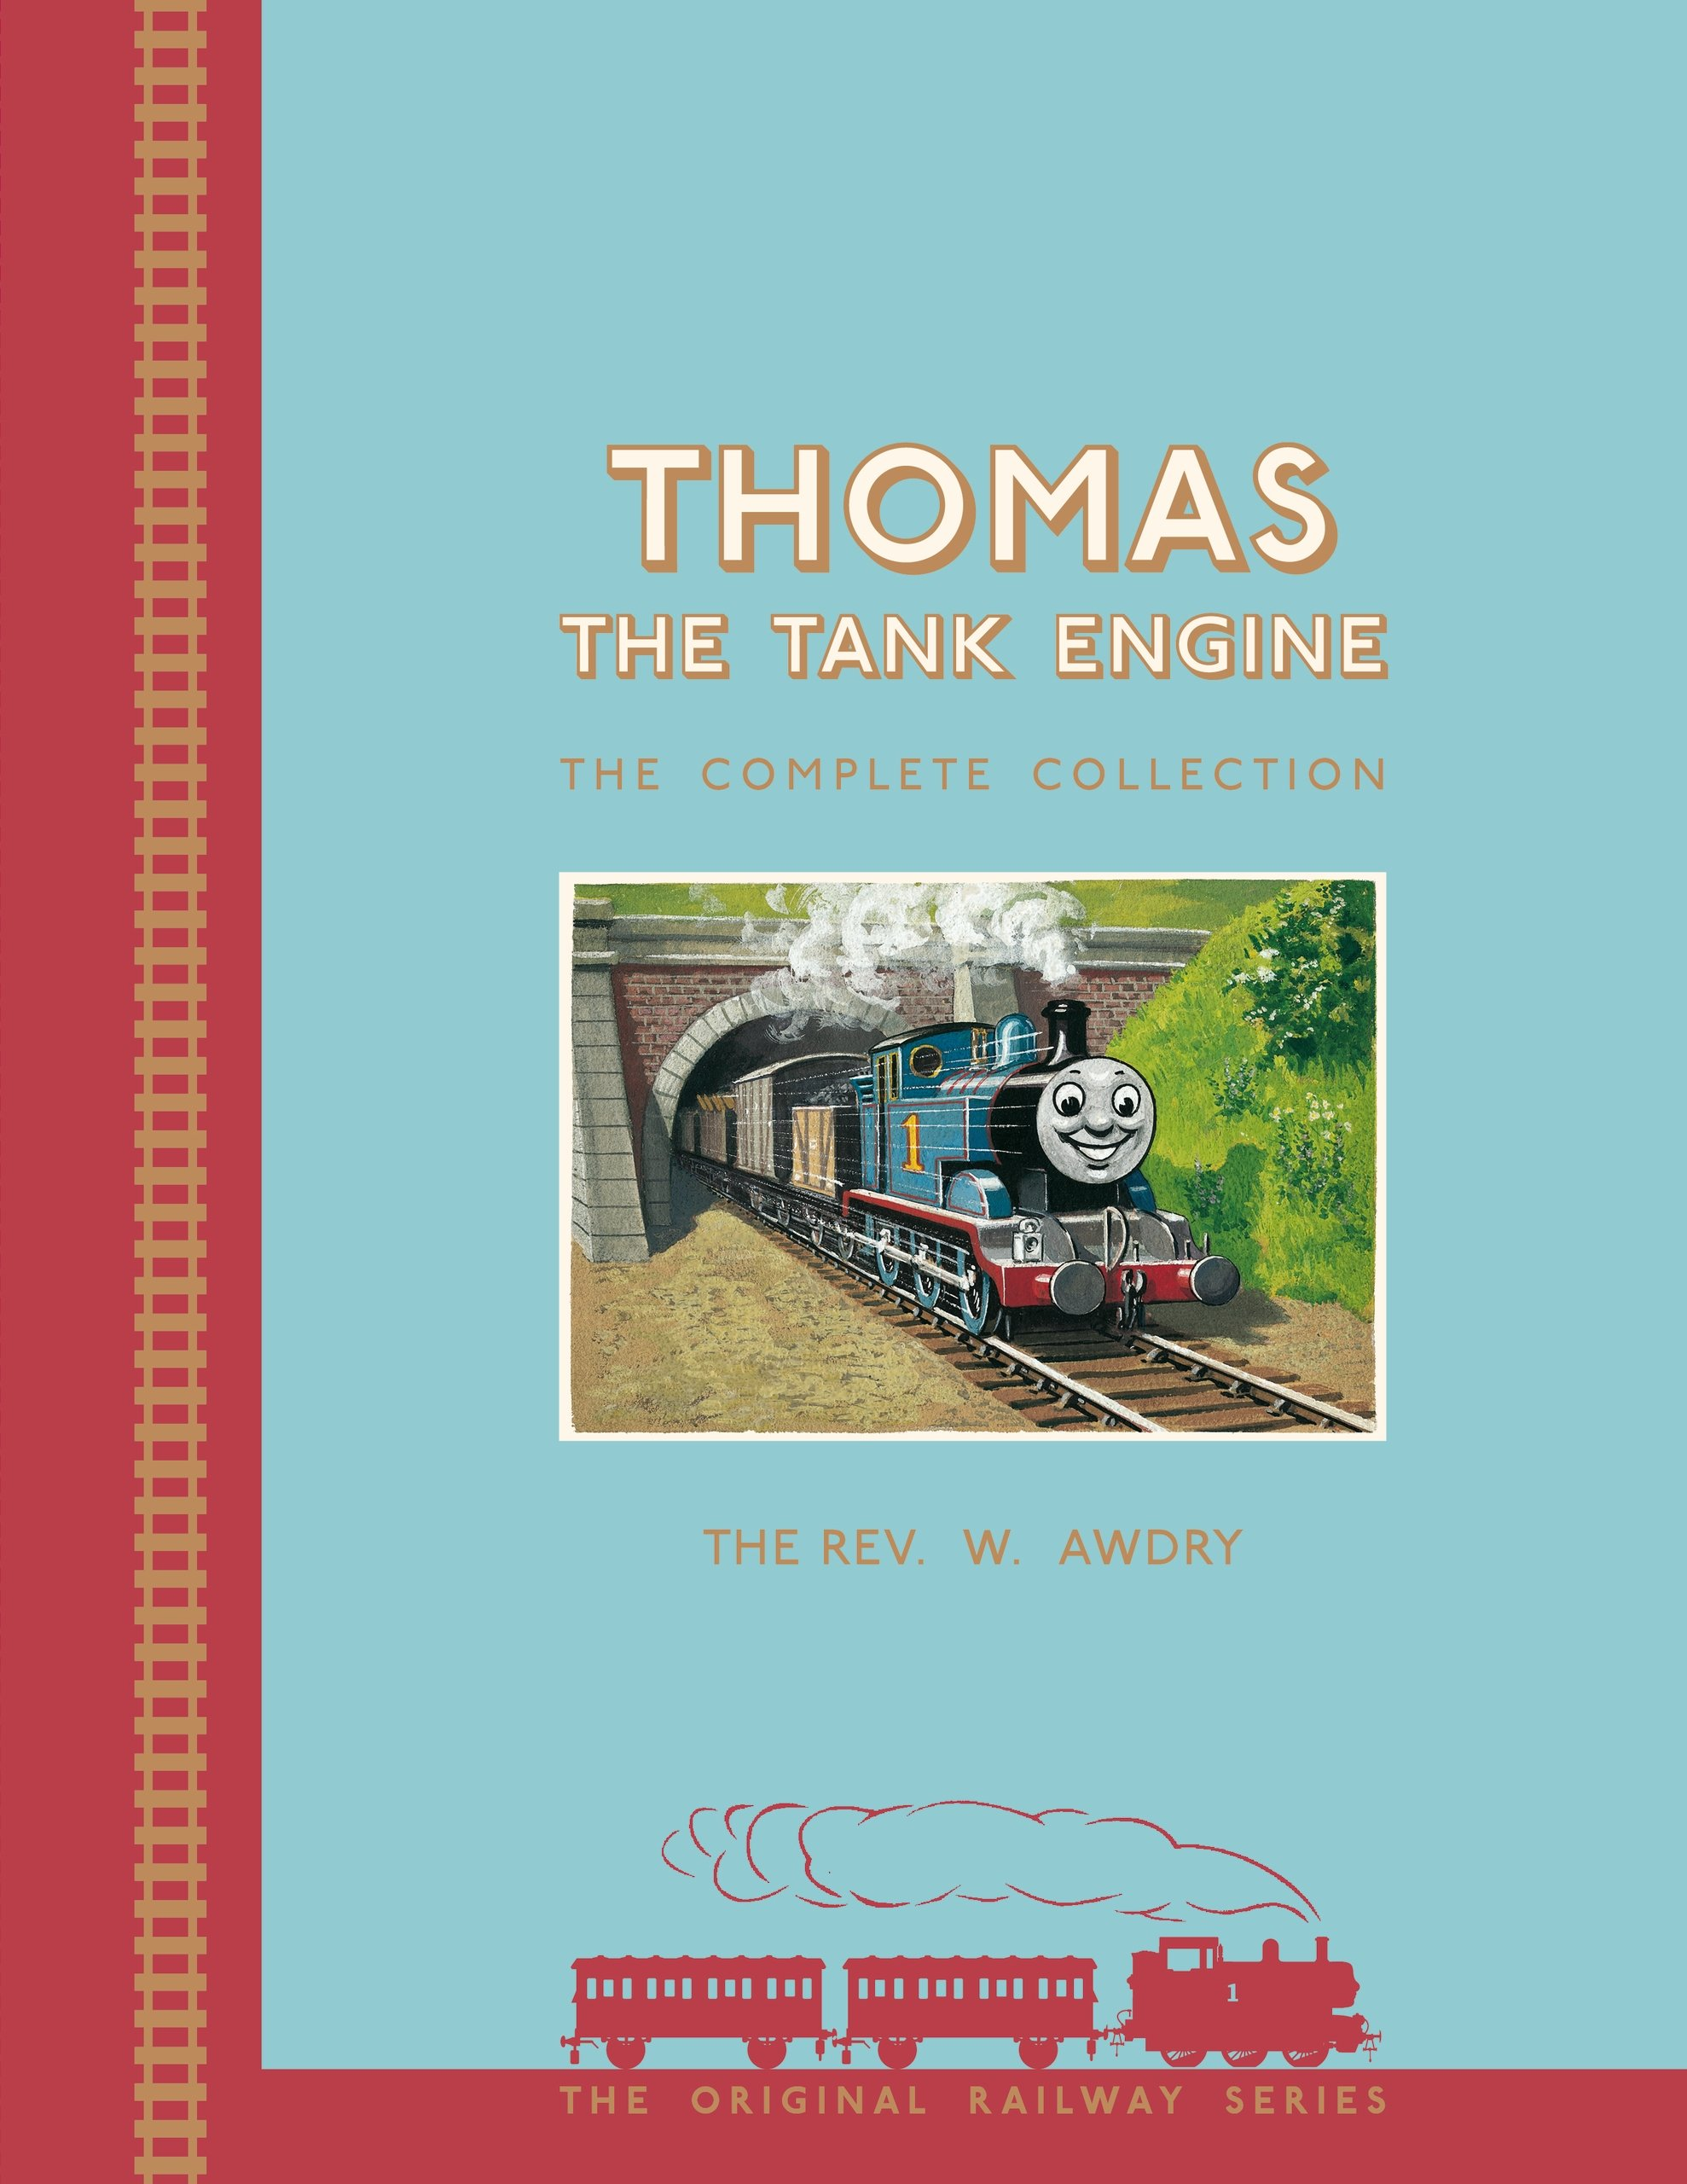 Thomas the Tank Engine Complete Collection (Classic Thomas the Tank Engine) by imusti (Image #1)